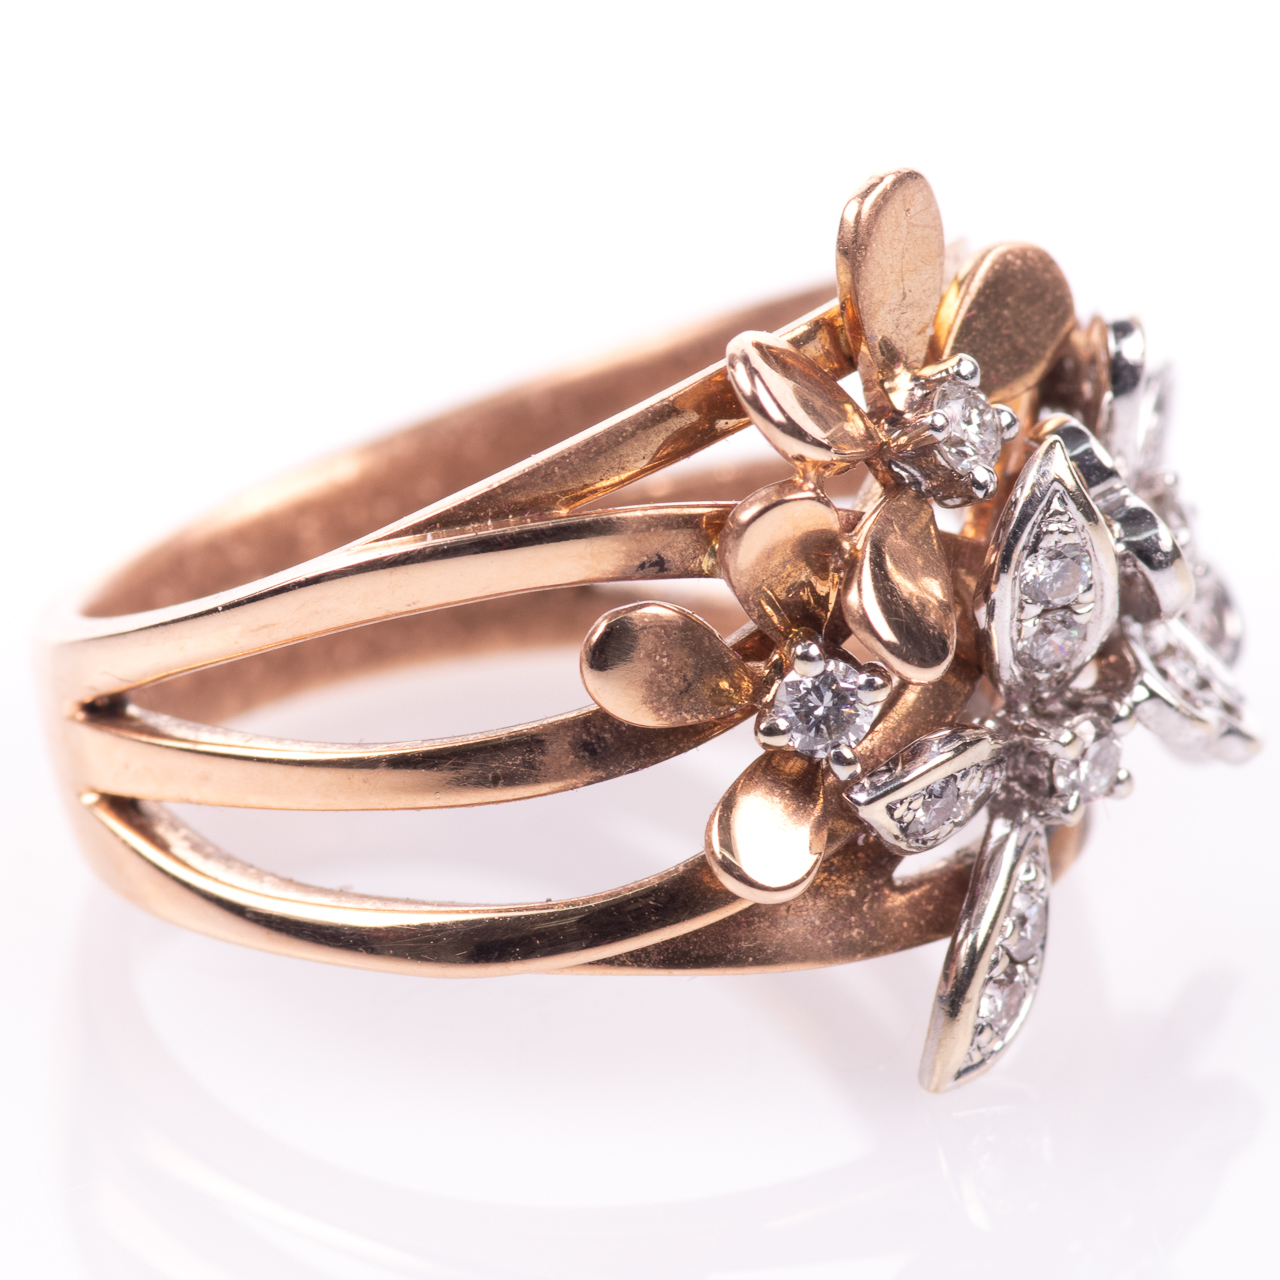 18ct Pink Gold Floral 0.25ct Diamond Ring - Image 7 of 7